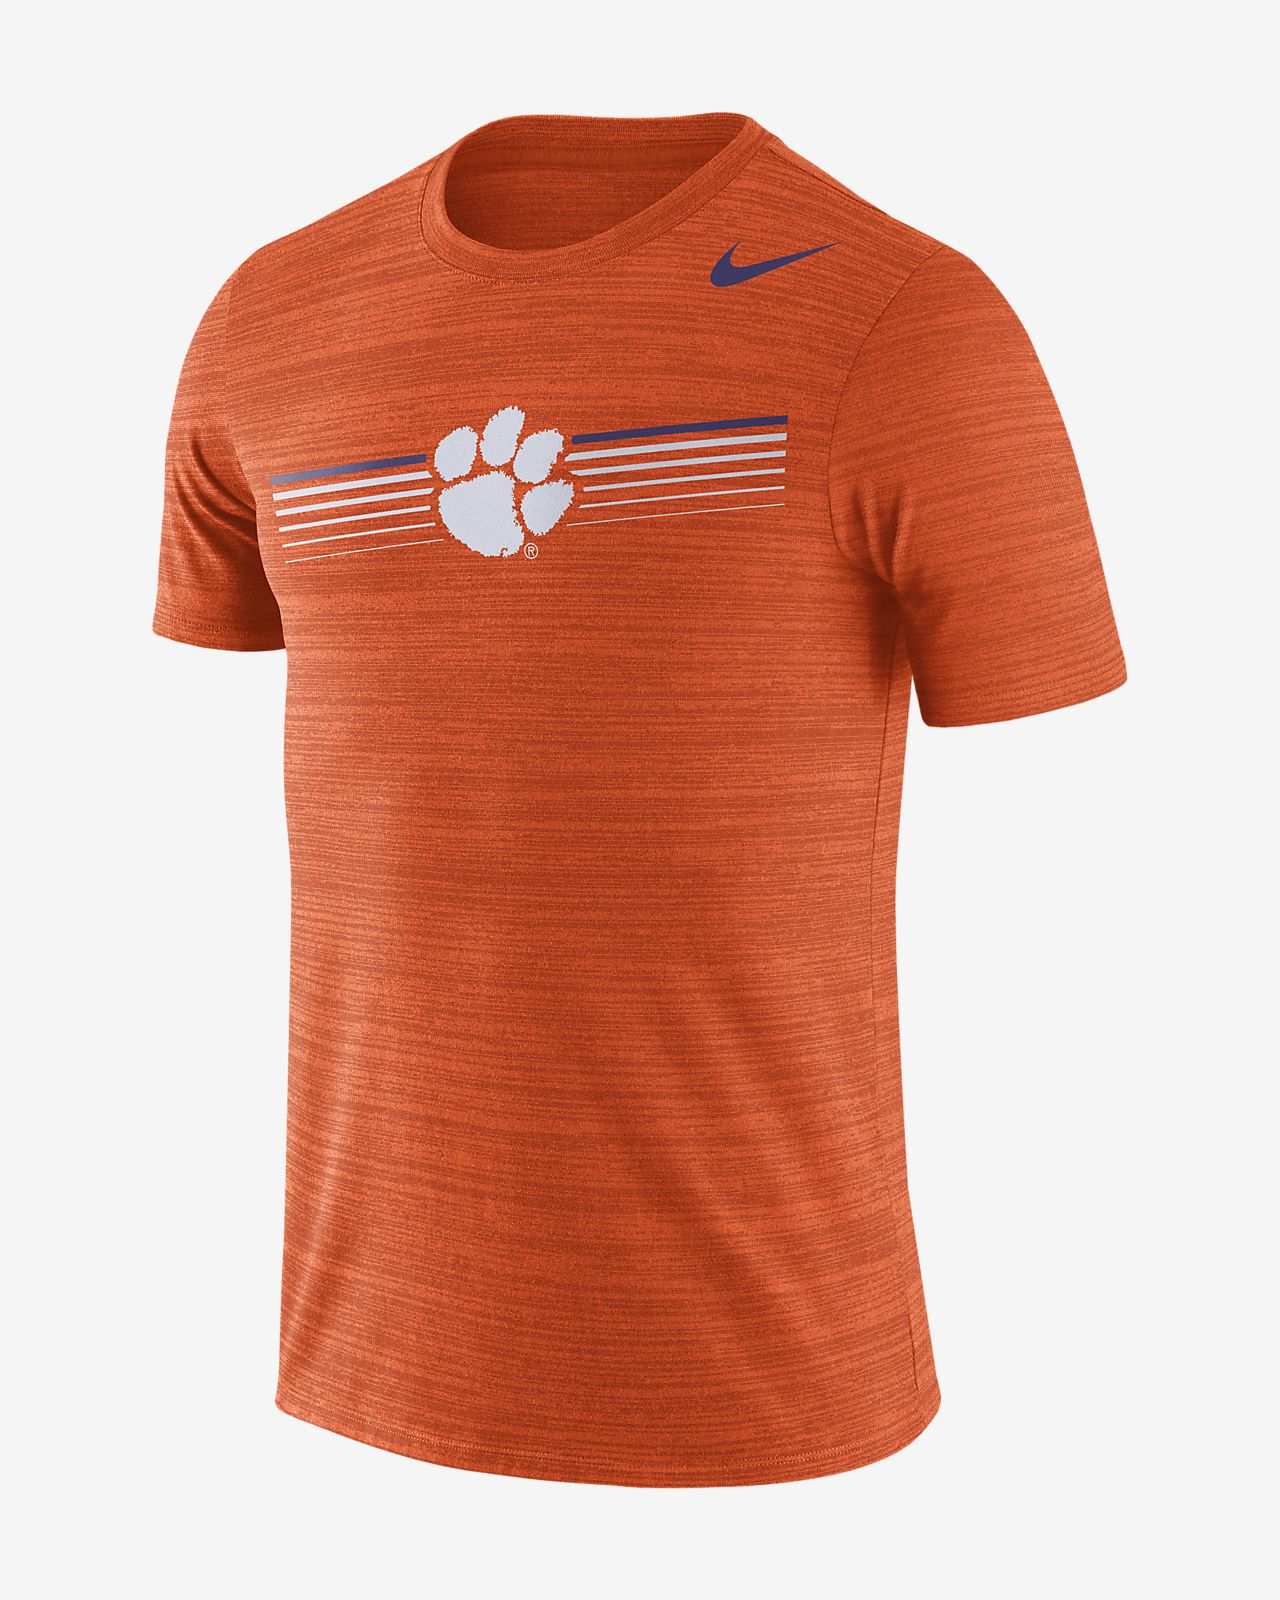 b5850dae Nike College Dri-FIT Legend Velocity (Clemson) Men's T-Shirt. Nike.com